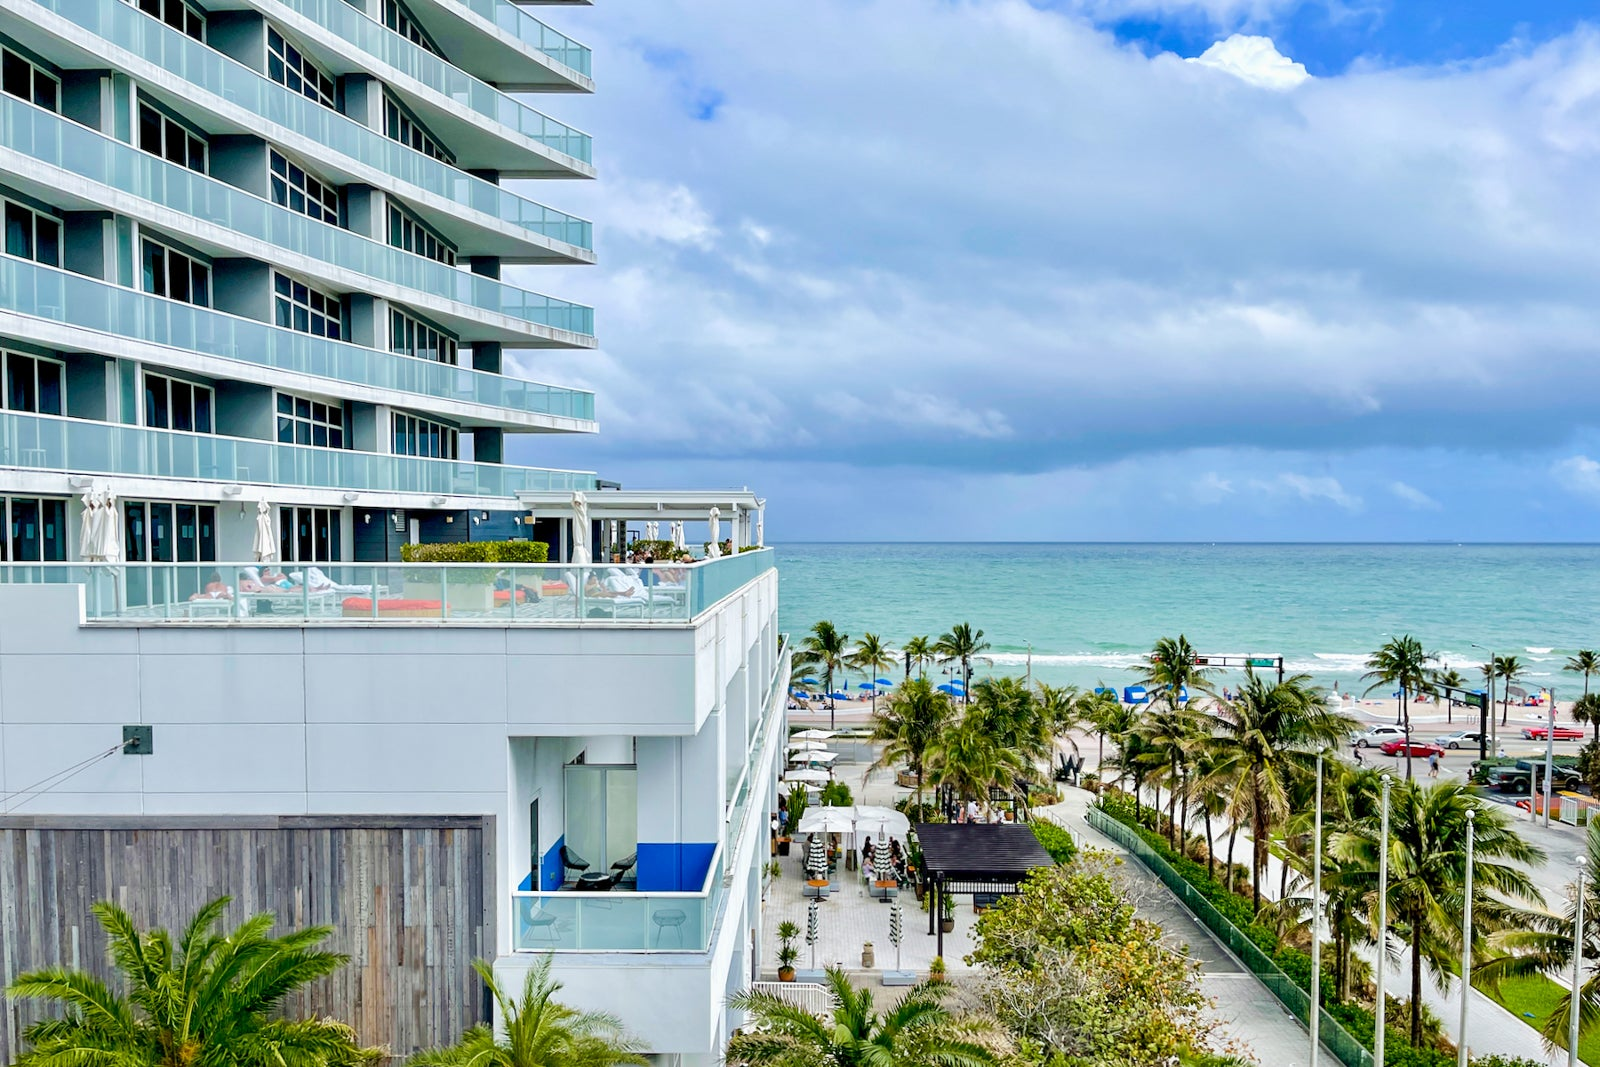 Stylish beachfront getaway: A review of the W Fort Lauderdale